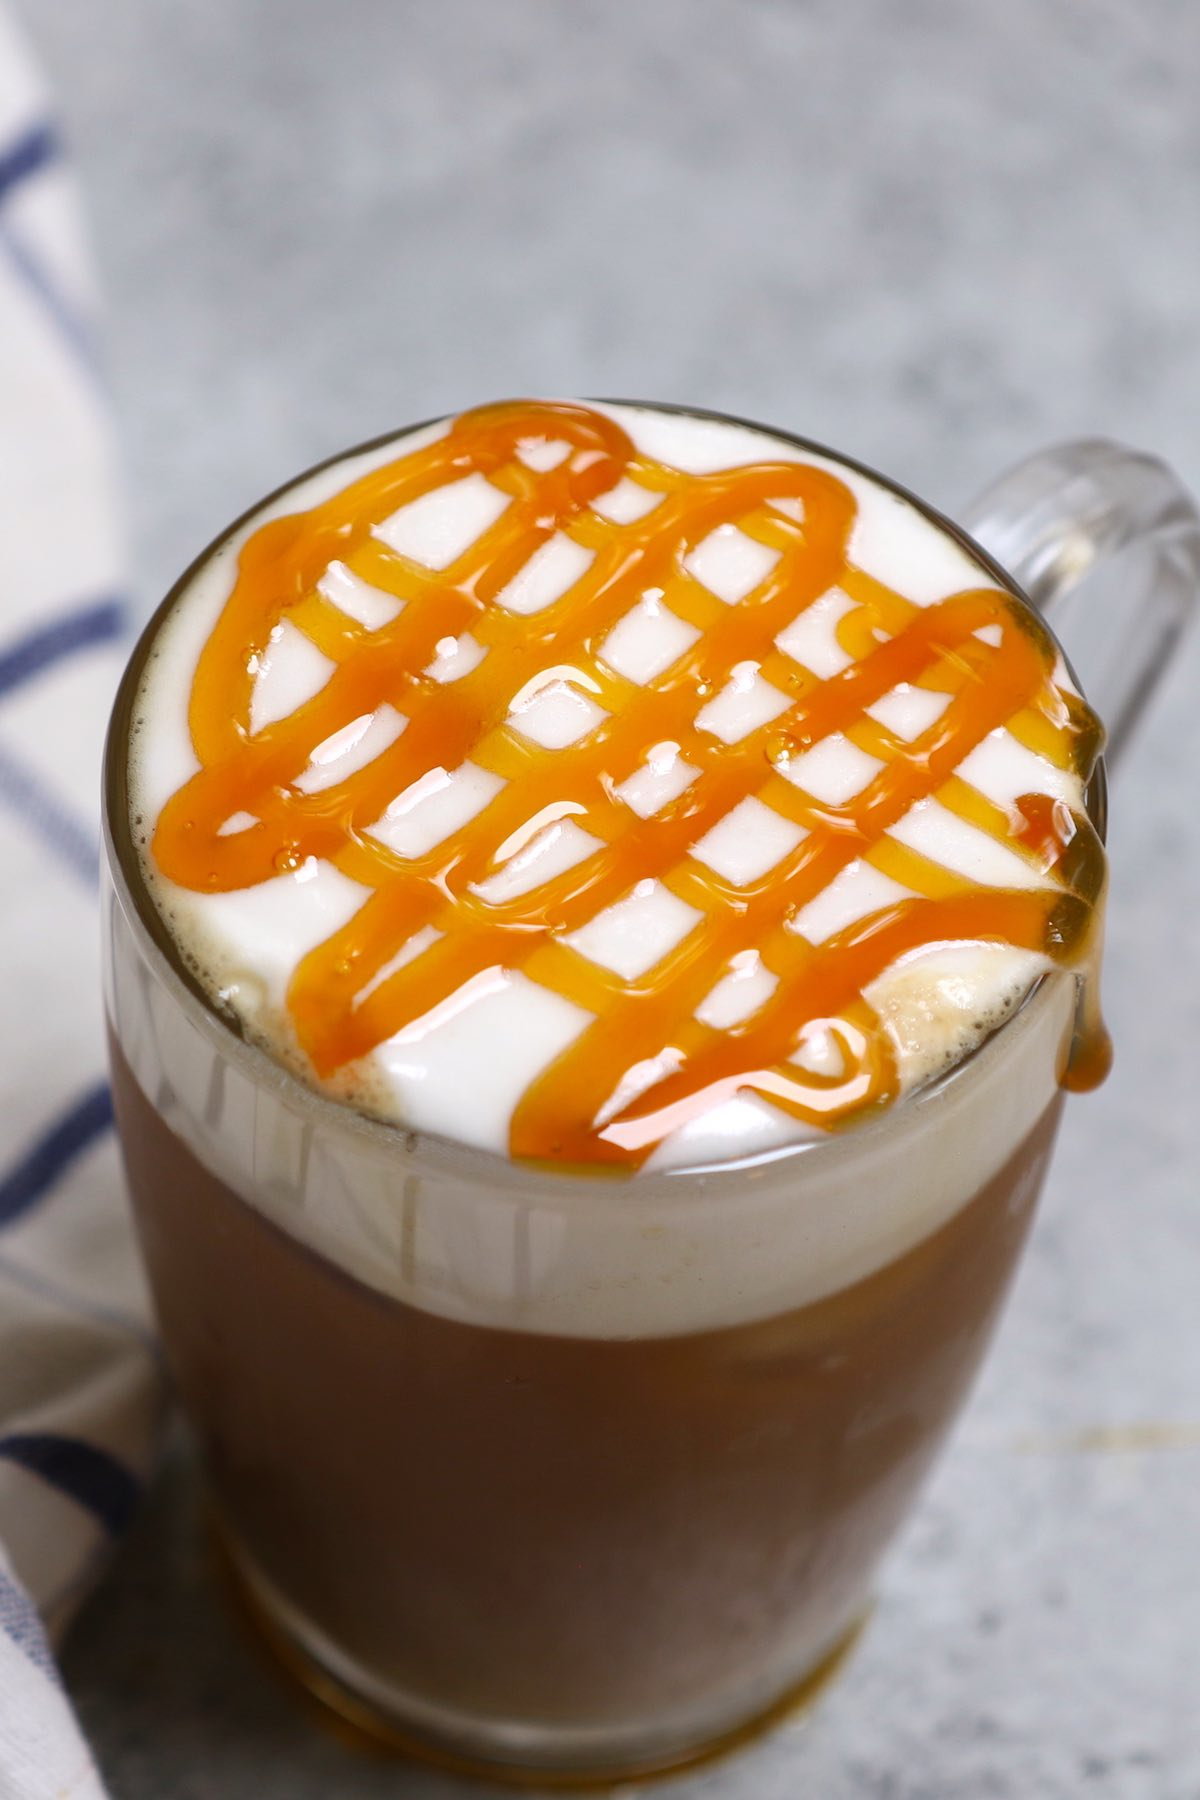 Try this copycat recipe of the popular Starbucks drink – Caramel Could Macchiato! Airy, foamy, full of delicious espresso and vanilla flavor, then topped with buttery caramel sauce. This Starbucks cloud macchiato recipe is not to be missed! #IcedCloudMacchiato #CloudMacchiato #CaramelCloudMacchiato